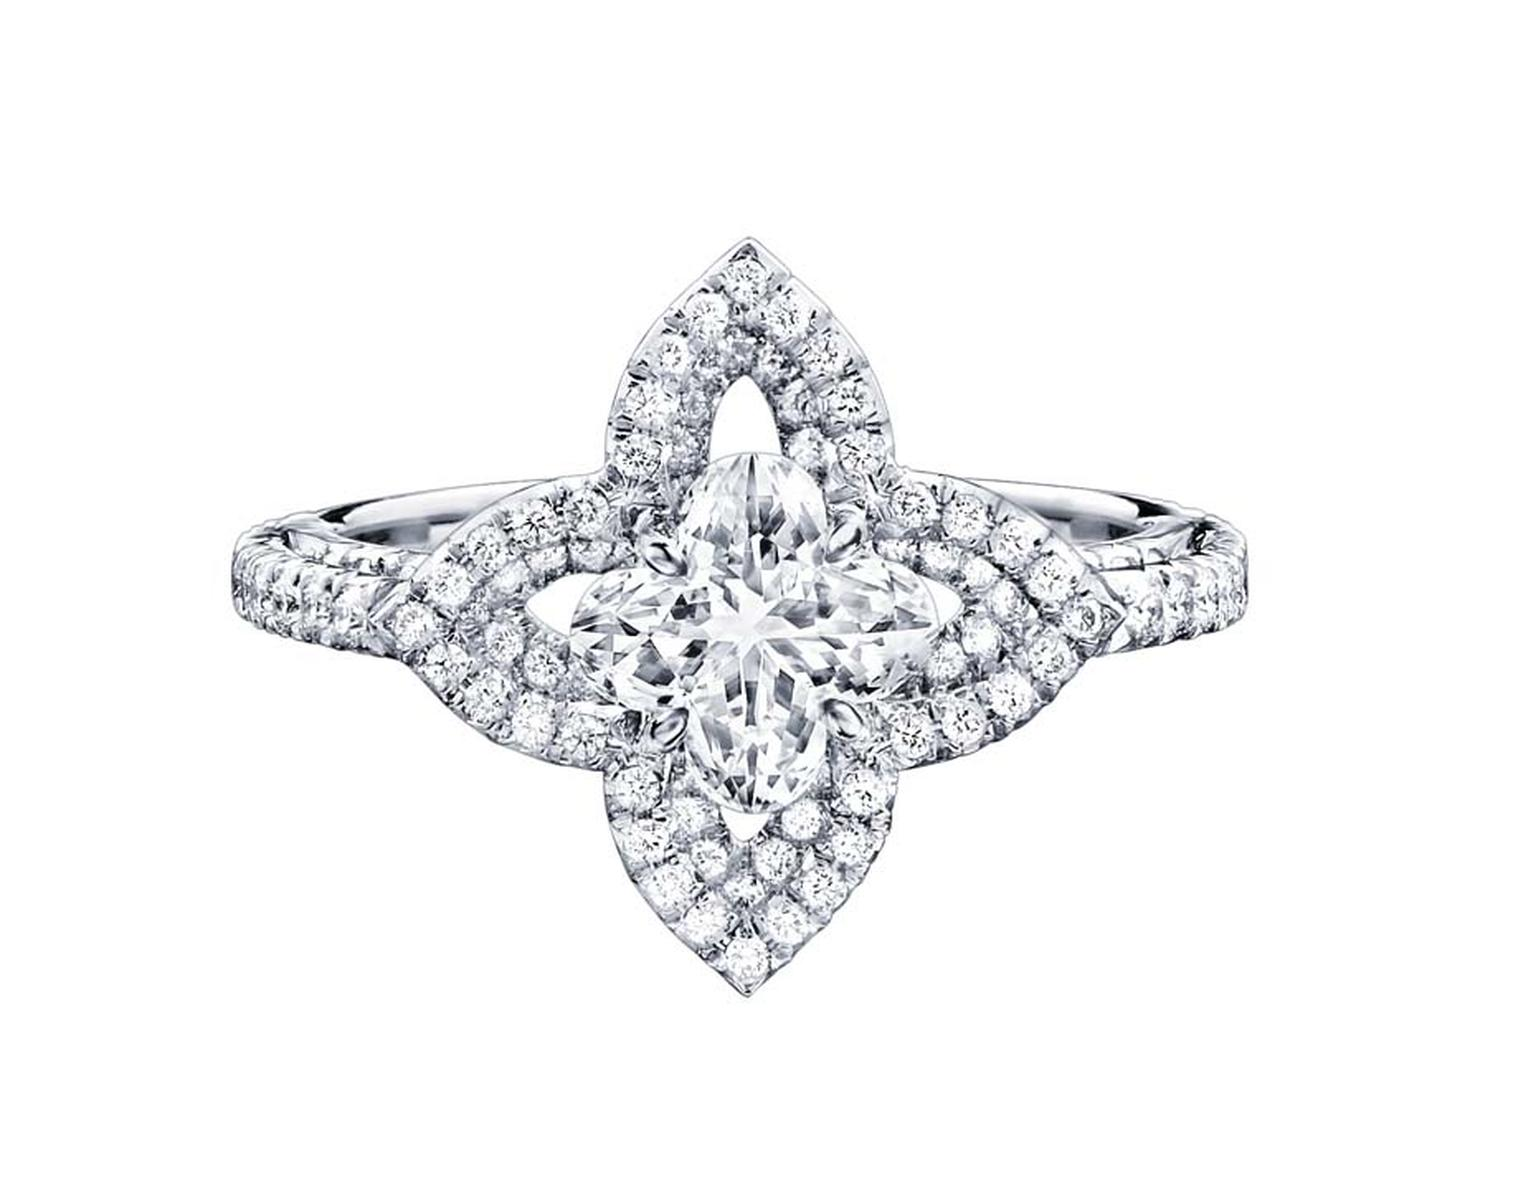 Solitaire diamond ring from the Monogram Fusion collection, set with a patented Louis Vuitton flower-cut diamond at the centre.